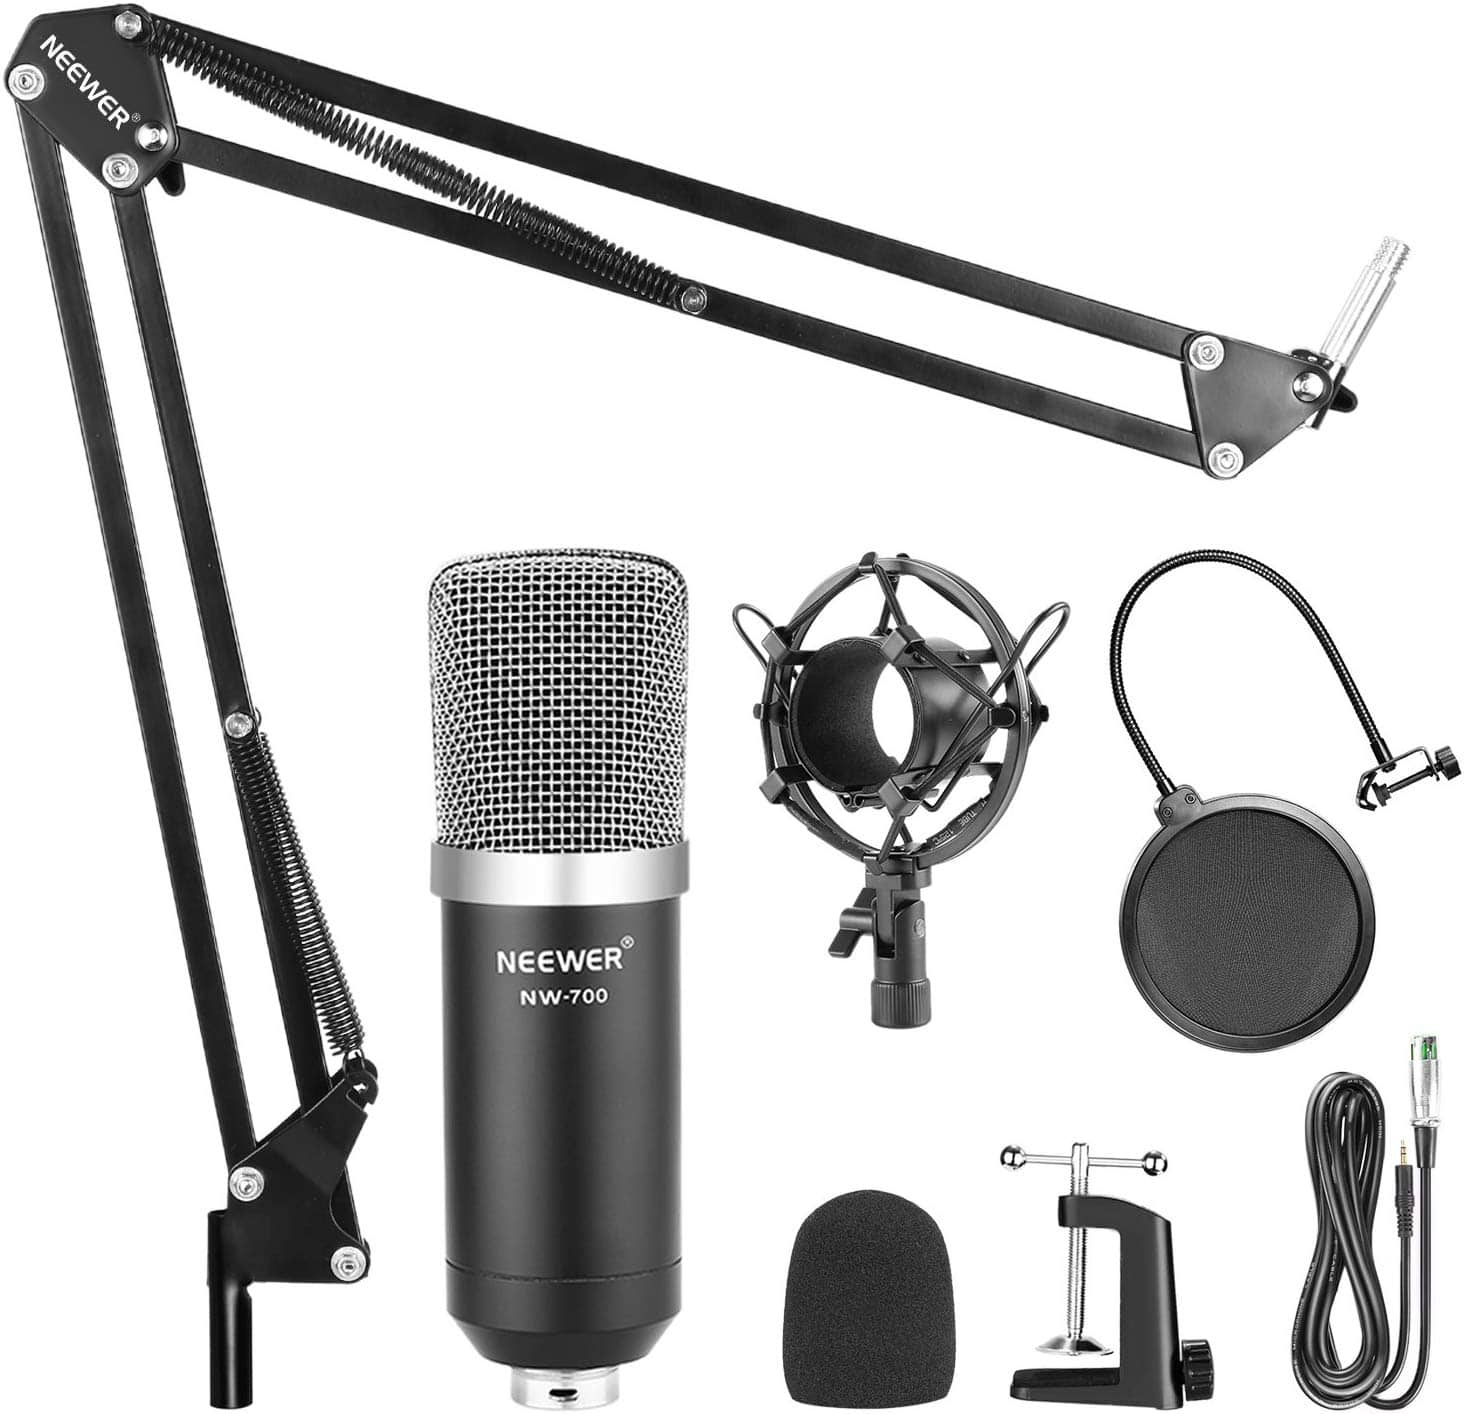 Neewer NW-700 Broadcasting Recording Condenser Microphone [With Arm Kit] $19.49